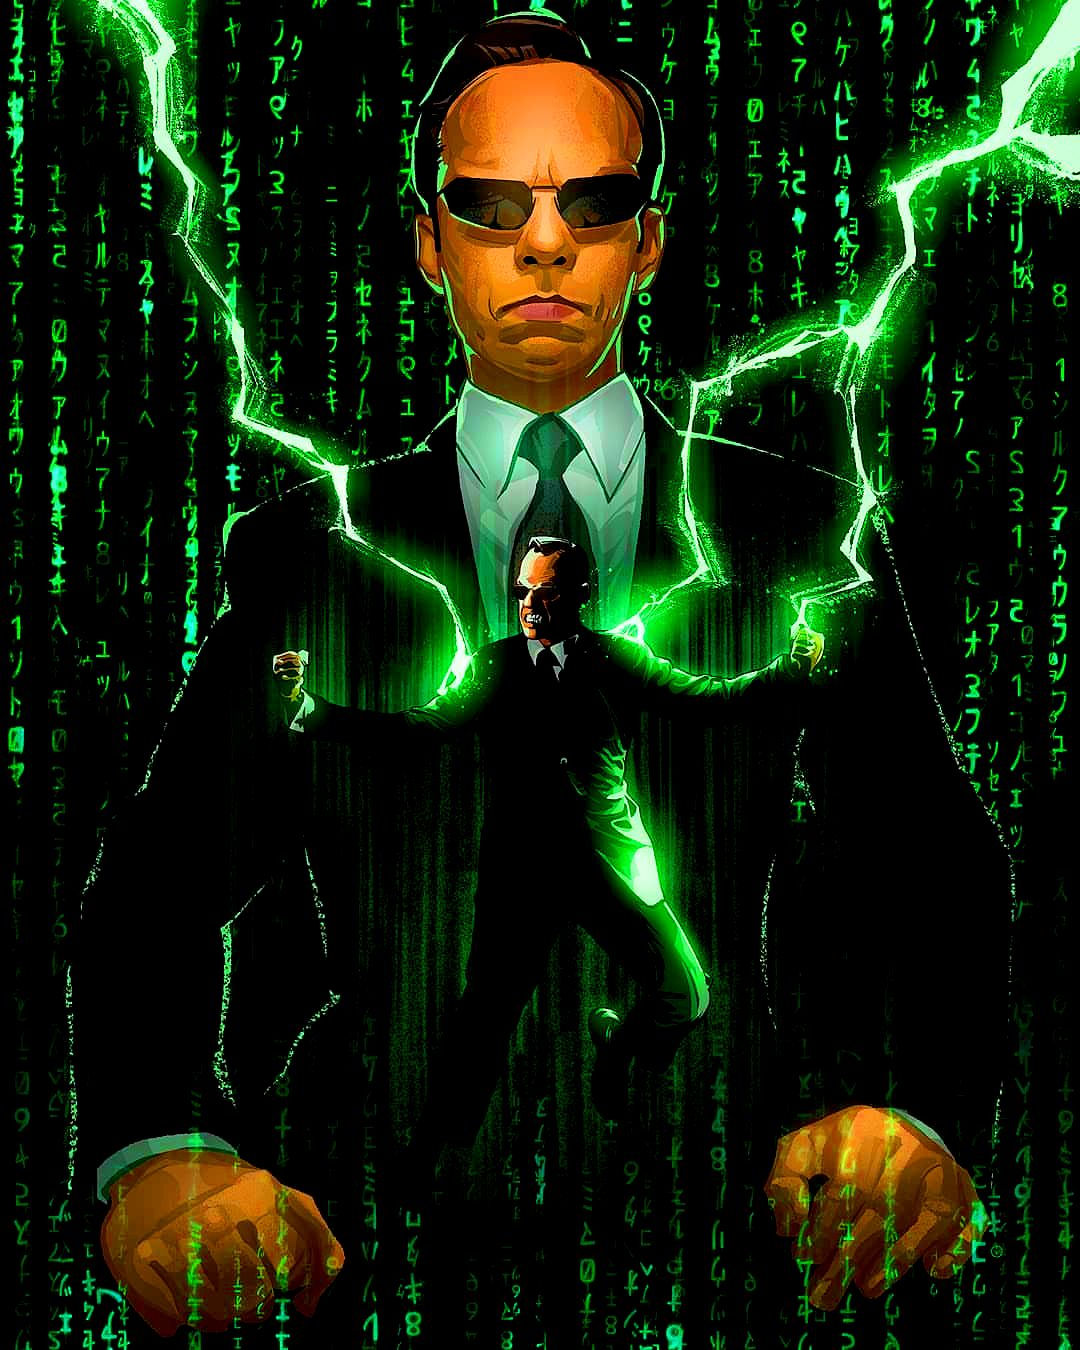 Pin By Richard Channing On The Matrix Anime Japan Keanu Reeves